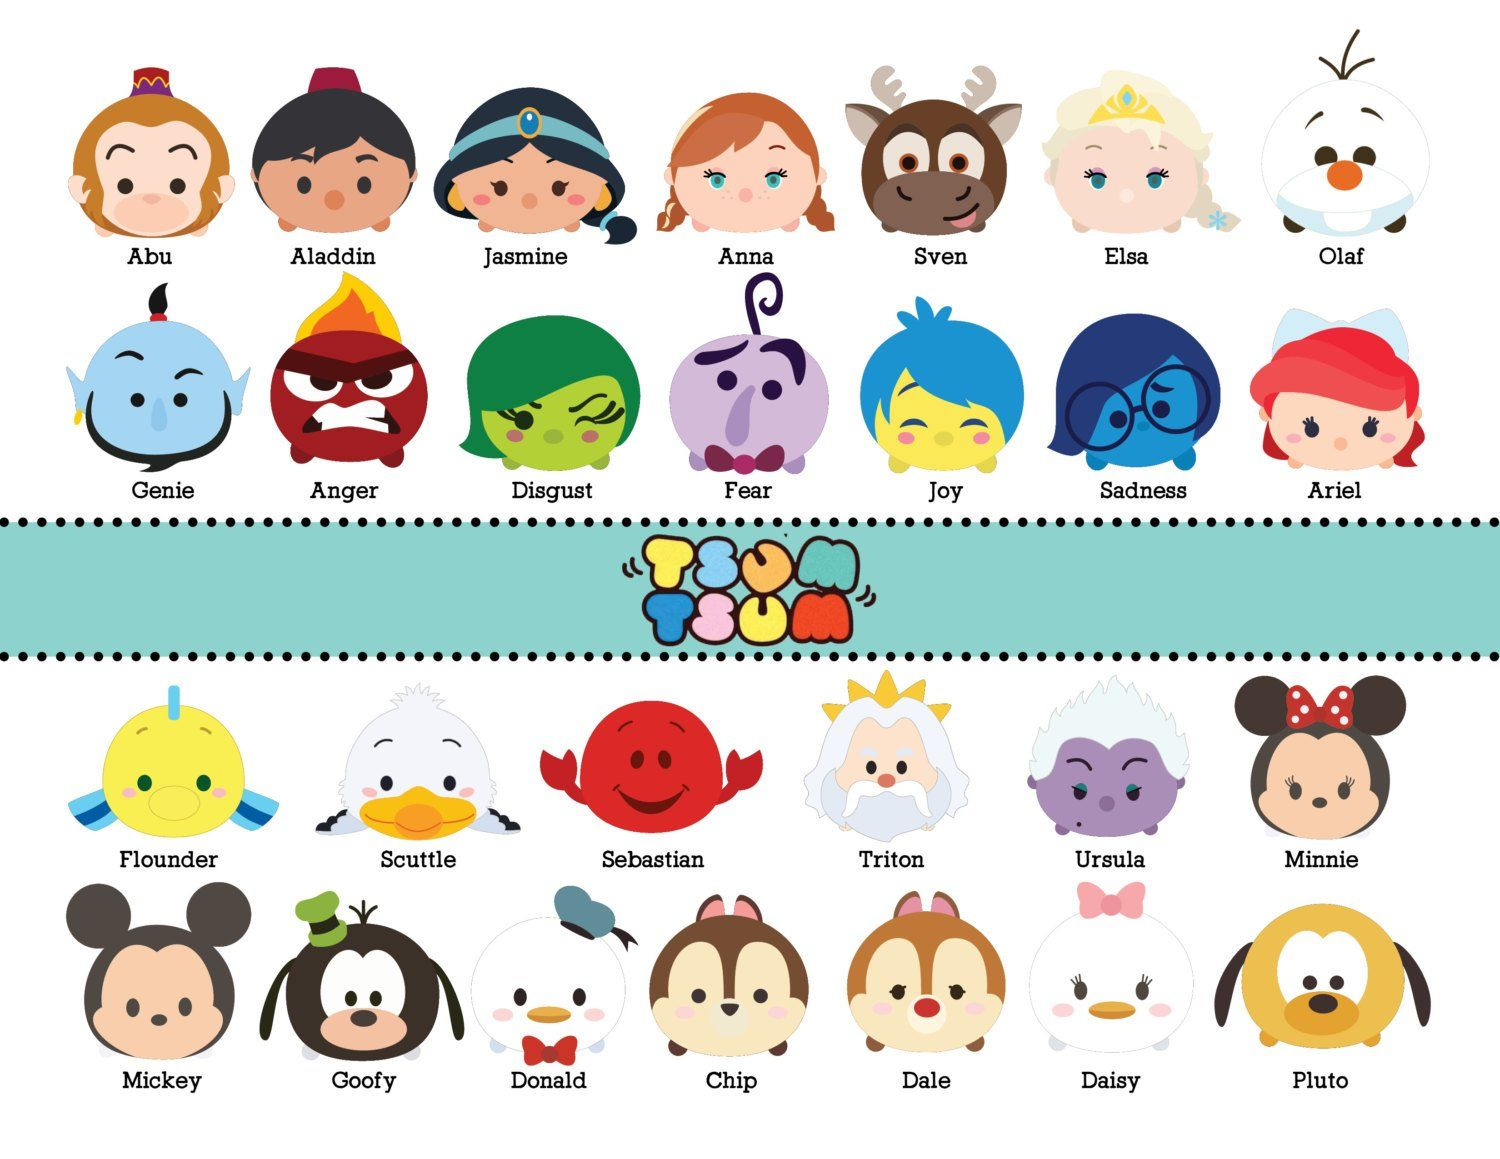 Disney Tsum Tsum 65 Images At 300dpi Resolution Digital Etsy Disney Tsum Tsum Tsum Tsum Party Tsum Tsum